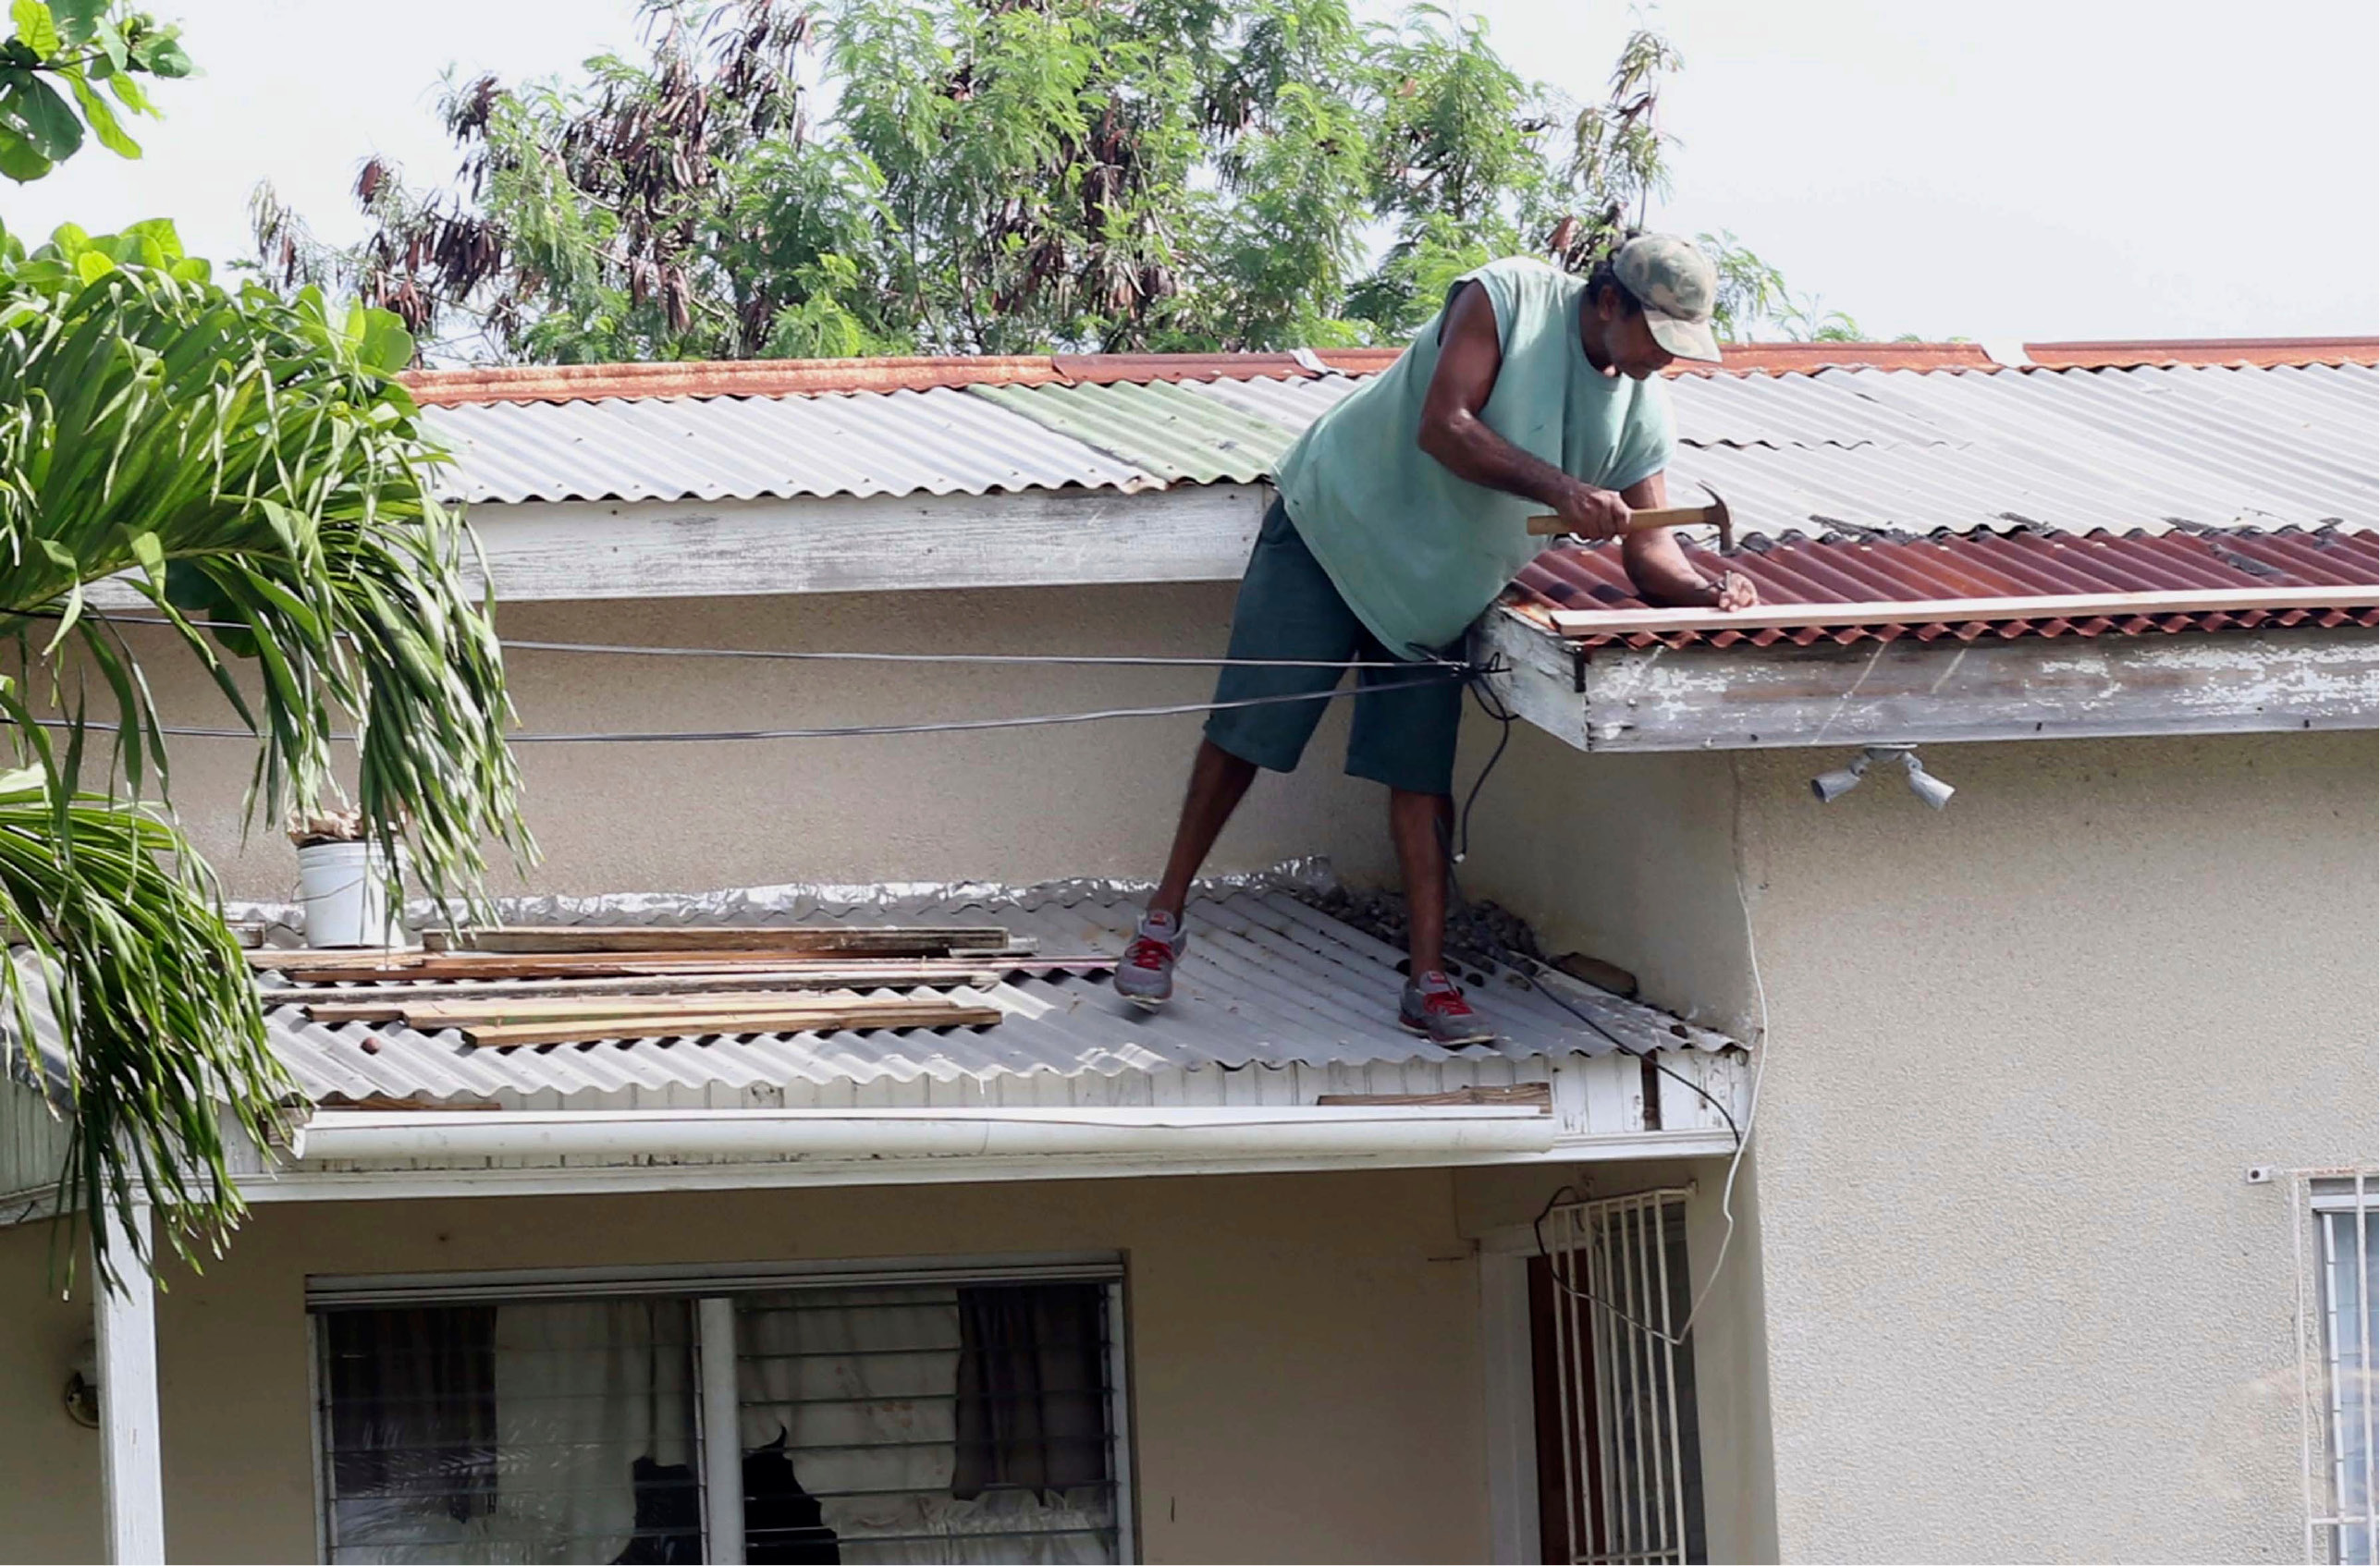 A homeowner makes last minute repairs to his roof in preparation for Hurricane Irma, in St. John